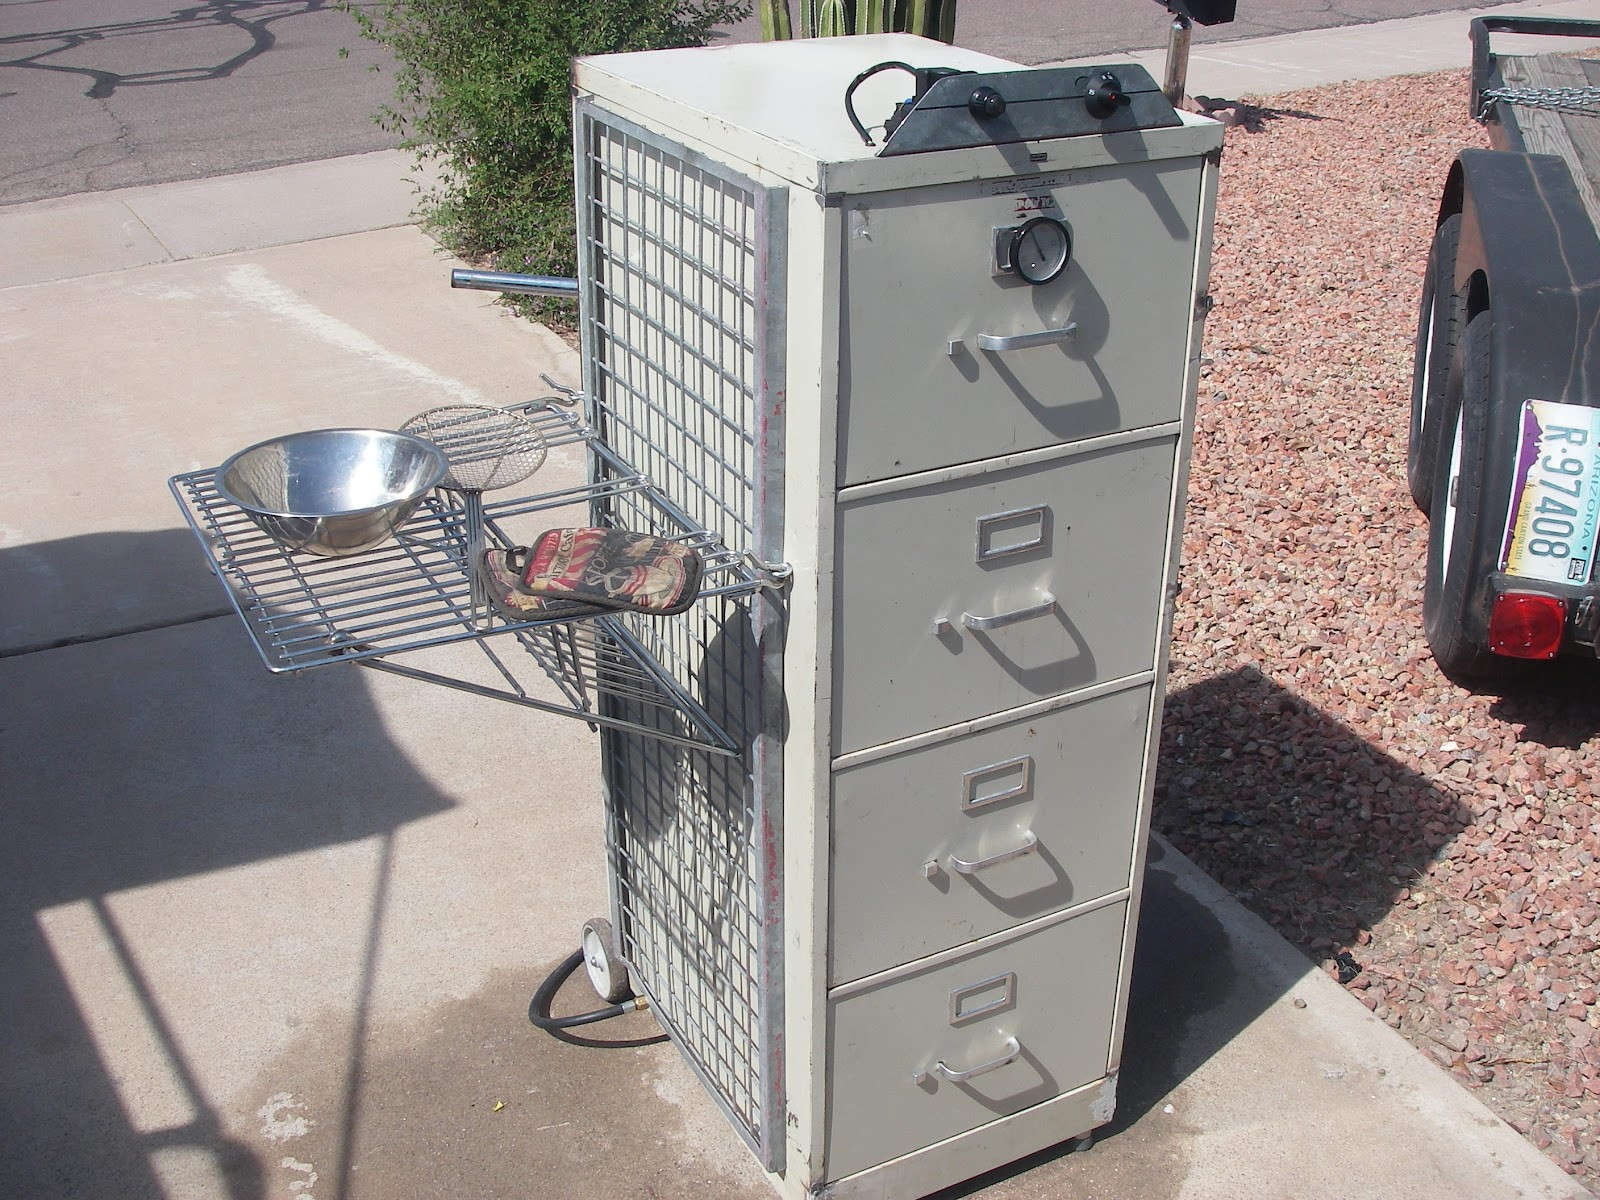 Best ideas about DIY Vertical Smoker Plans . Save or Pin 15 Homemade Meat Smokers to Add Smoked Flavor to Meat or Now.